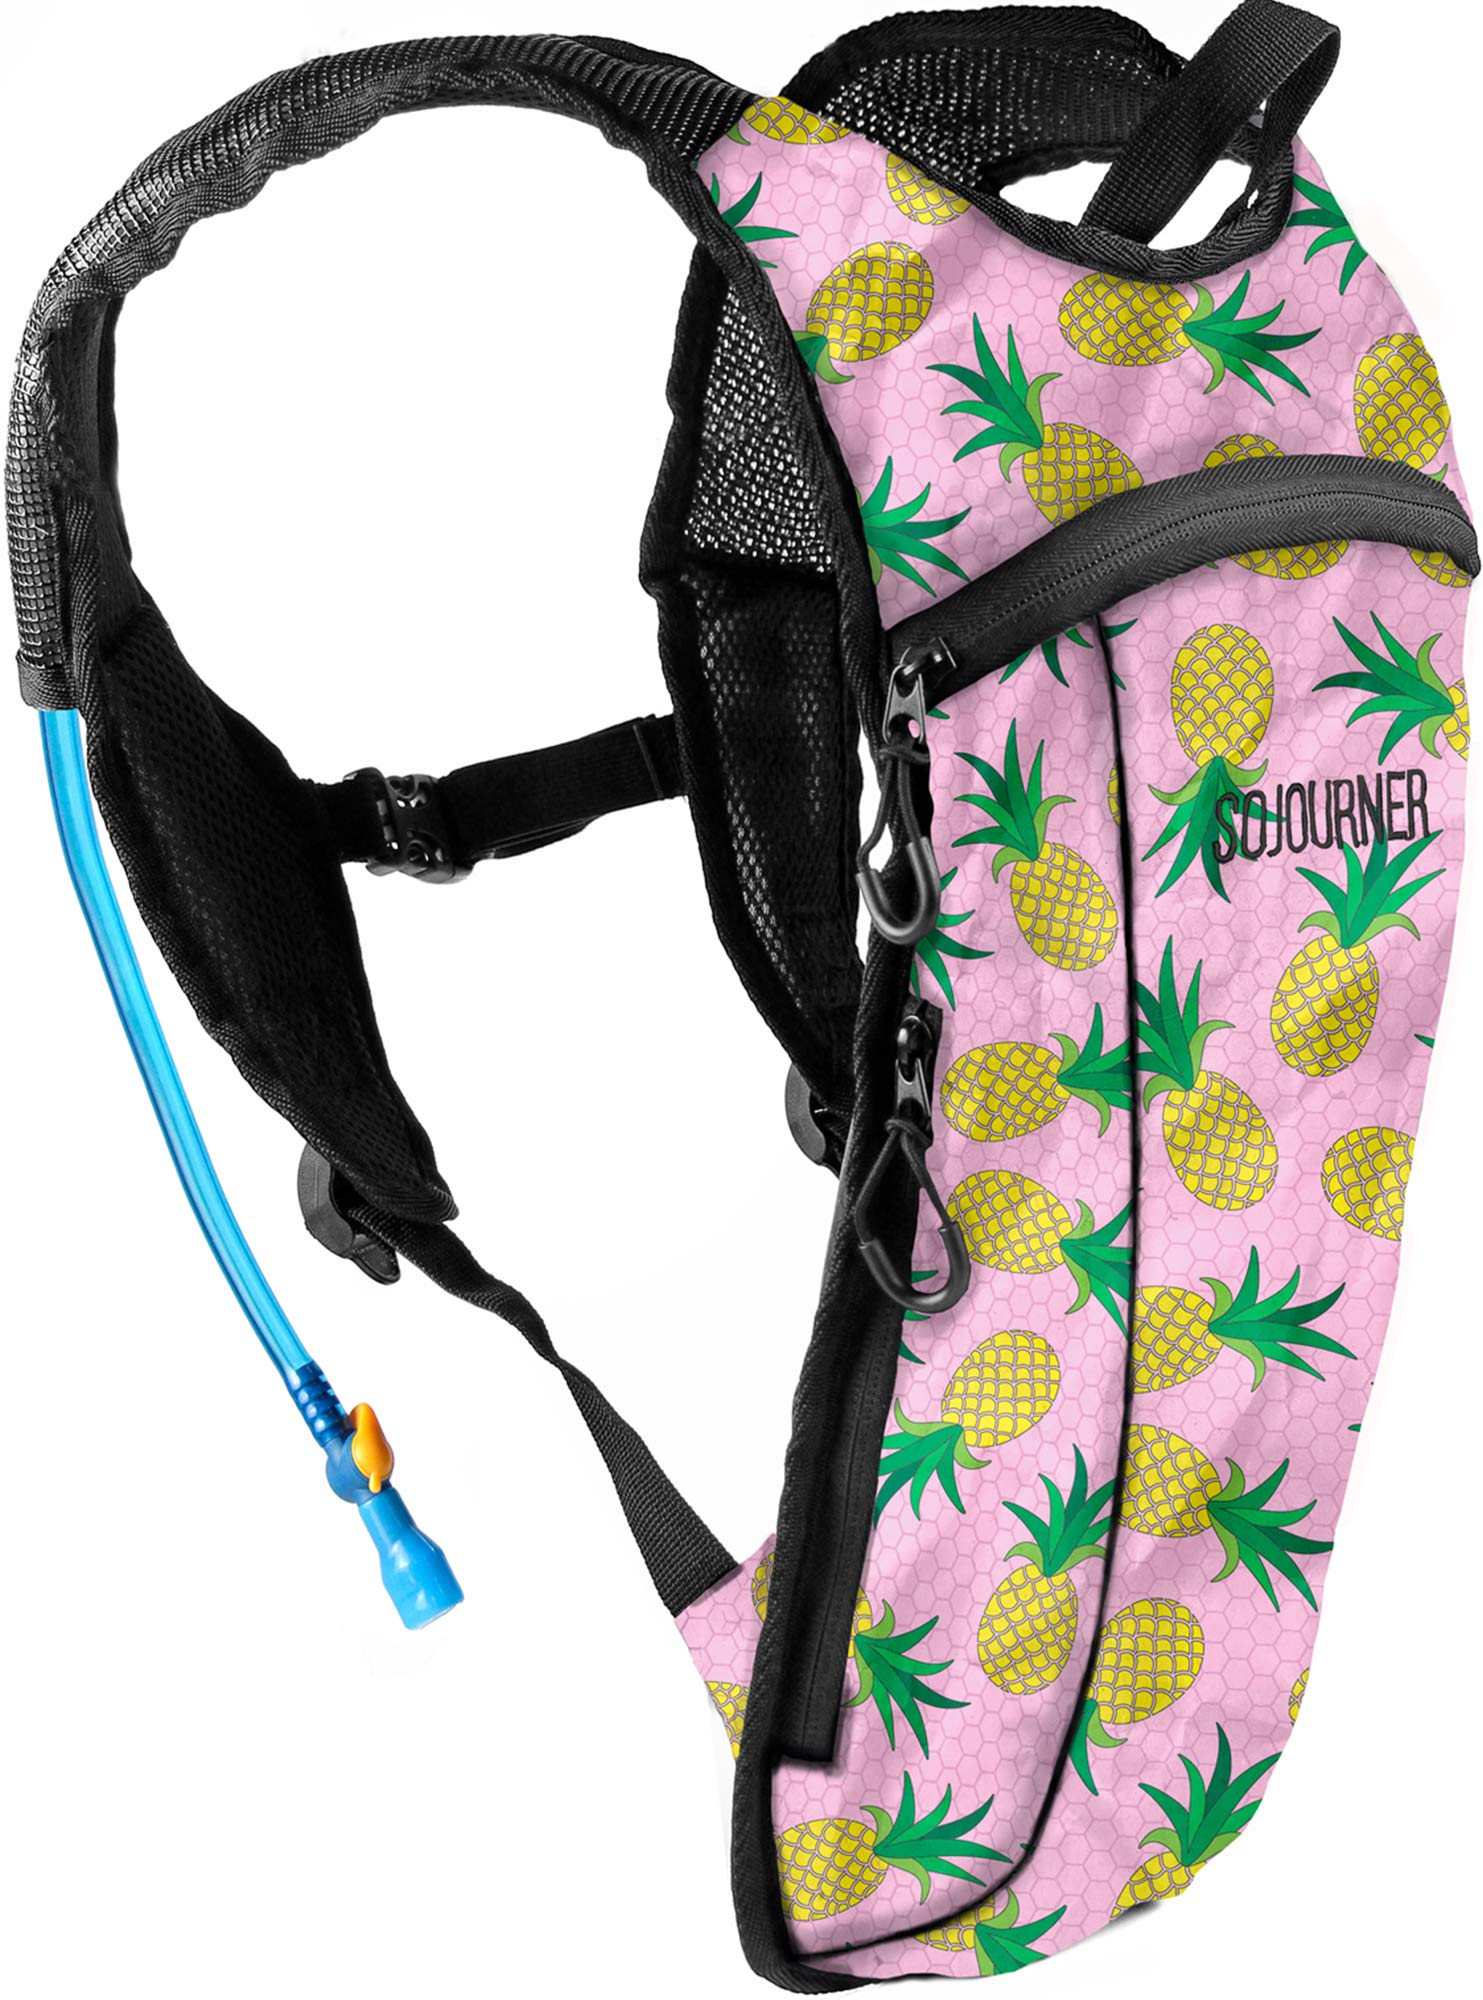 Sojourner Rave Hydration Pack Backpack - 2L Water Bladder Included for Festivals, Raves, Hiking, Biking, Climbing, Running and More (Small) (Pineapple) by SoJourner Bags